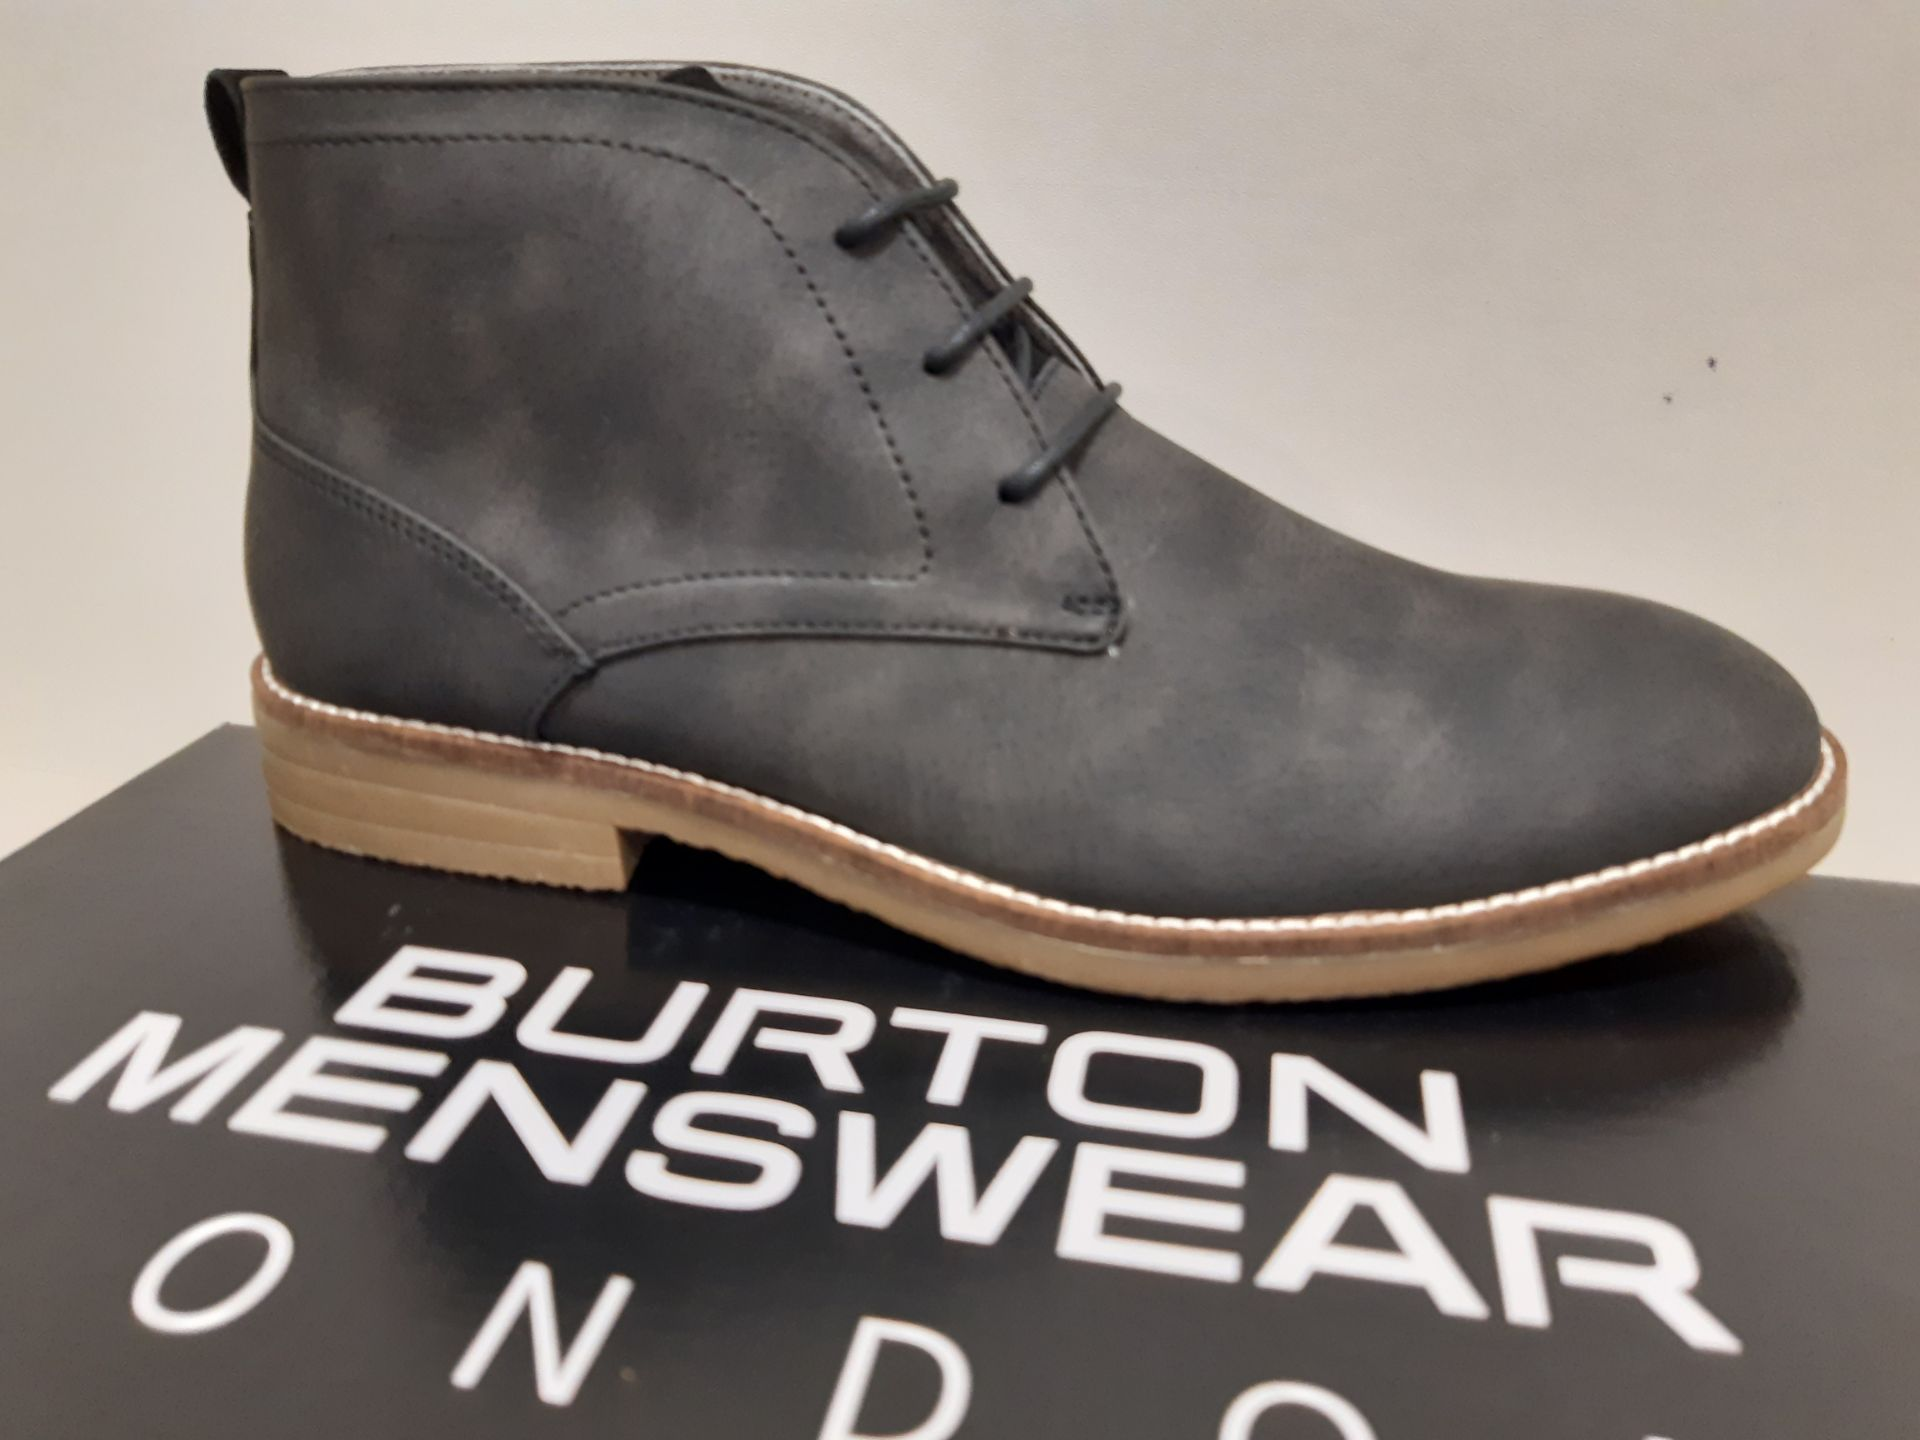 5 X BRAND NEW BURTON GREY LEATHER LOOK CHUKKER BOOTS SIZES UK 8 AND 9